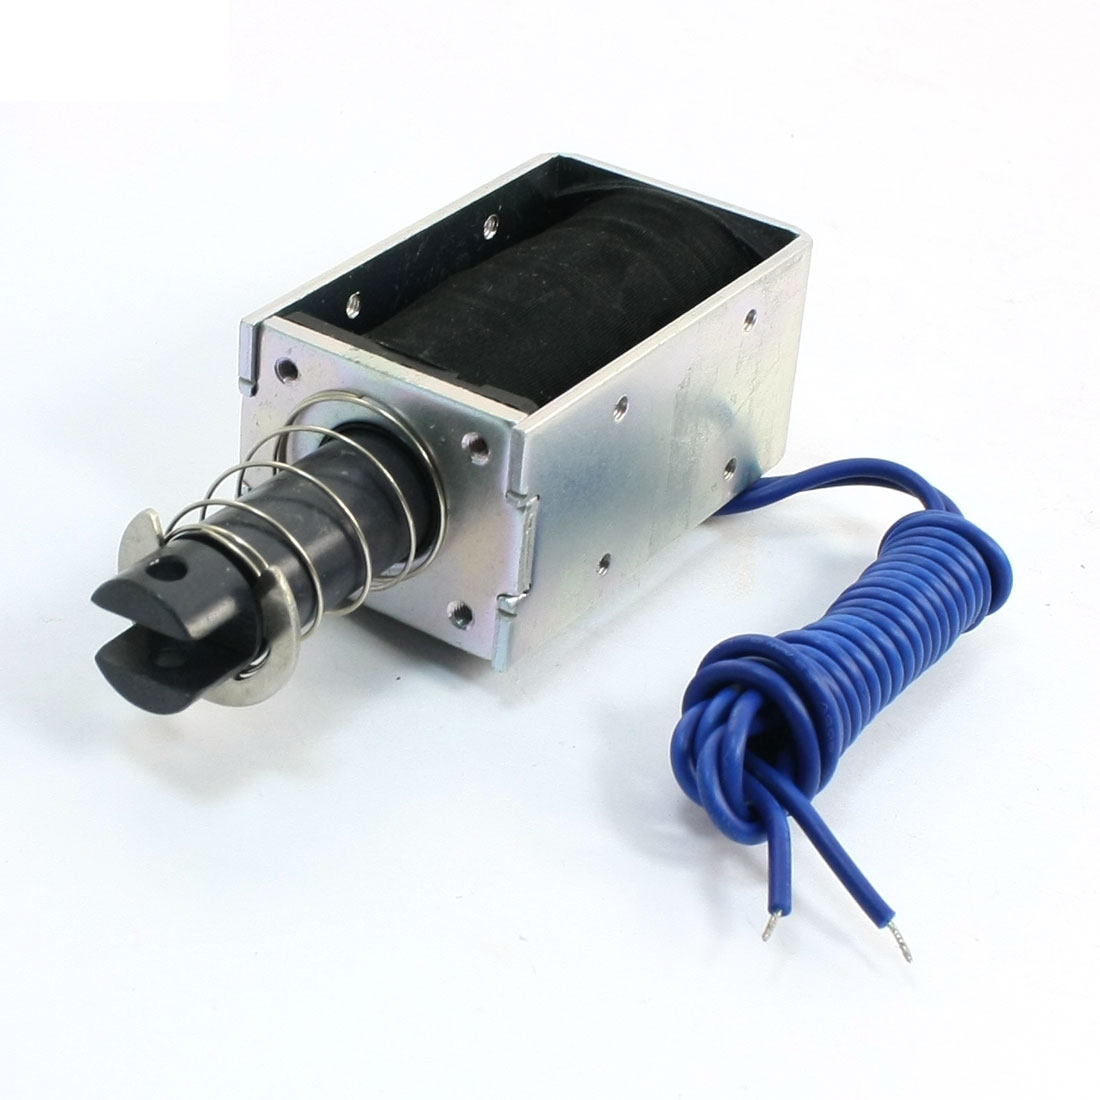 DC-24V-Linear-Motion-5mm-Stroke-1-7Kg-Force-Solenoid-Electromagnet